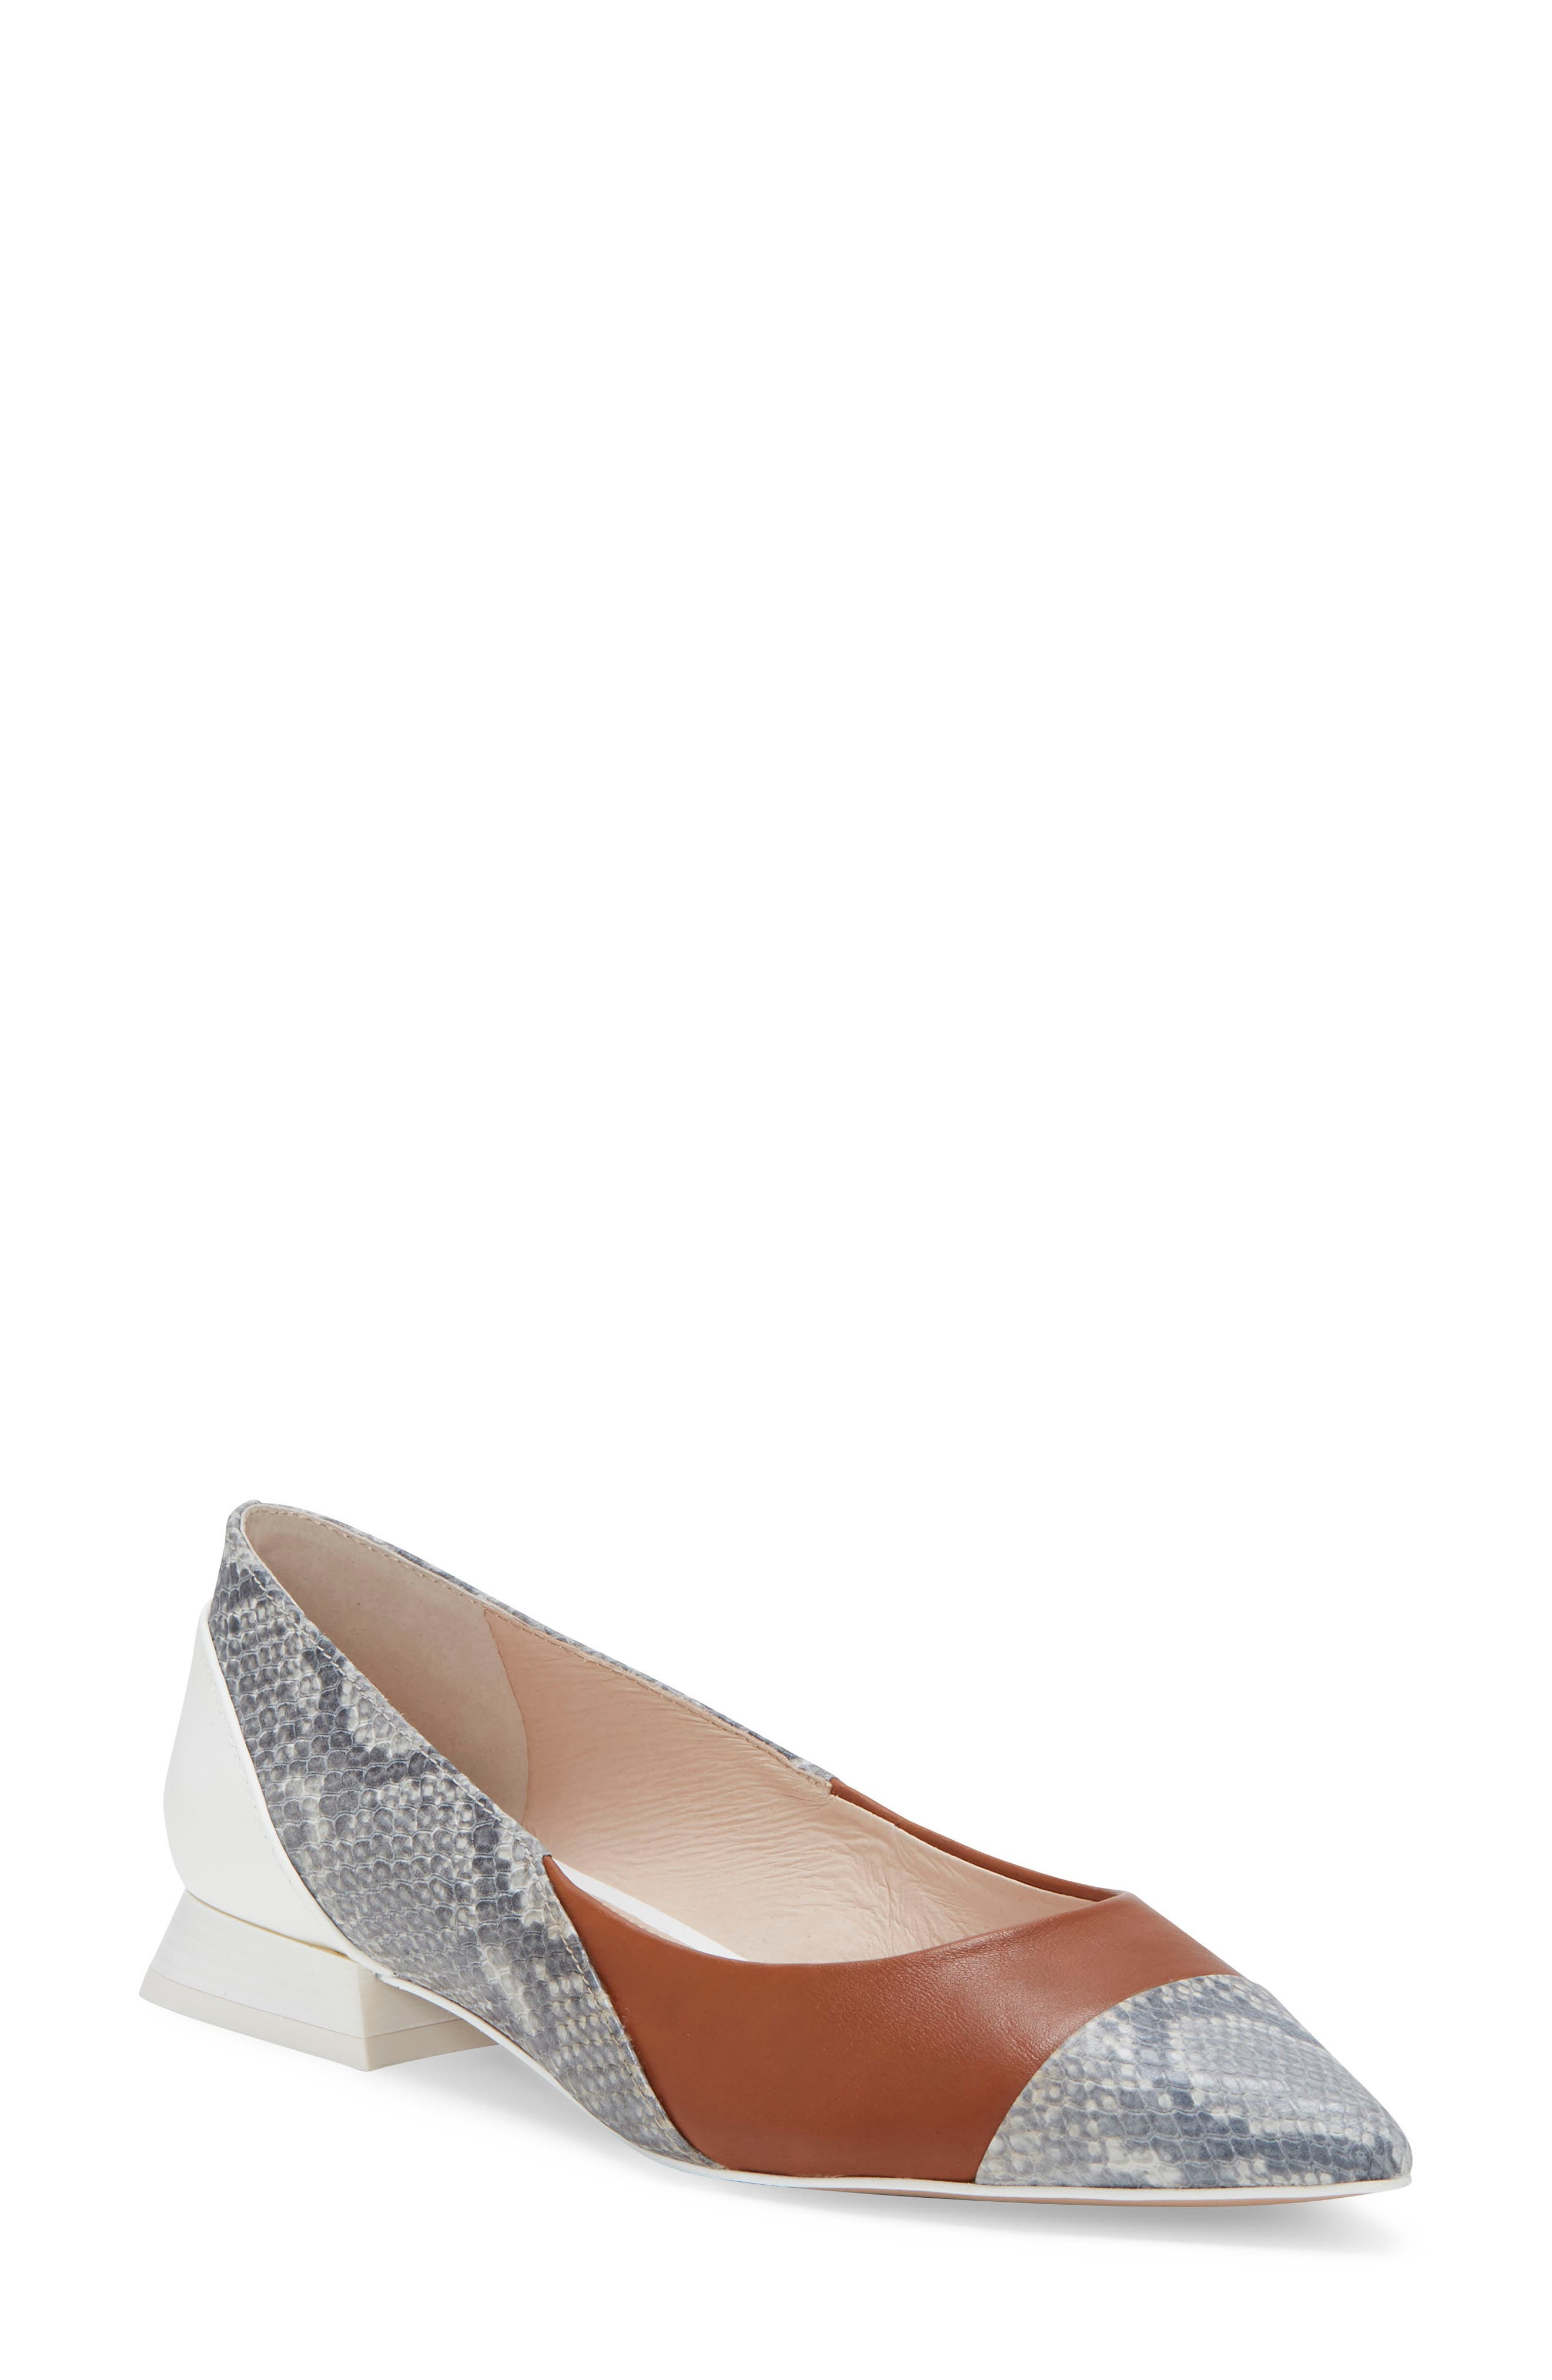 Ladies Flat Shoe With Crossover Strap Size 6 New FREE DELIVERY